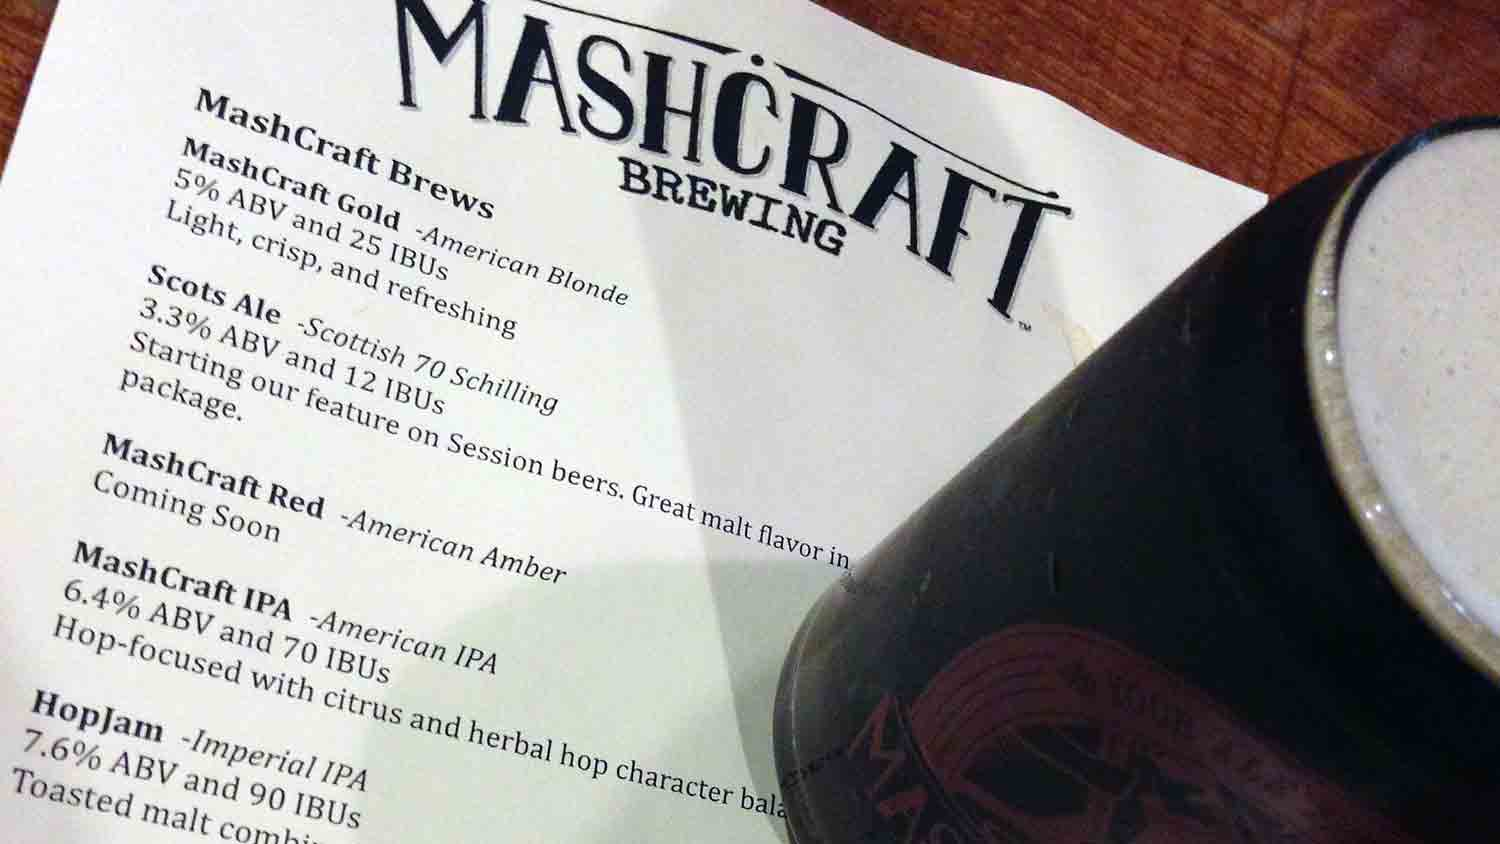 MashCraft Brewing Company